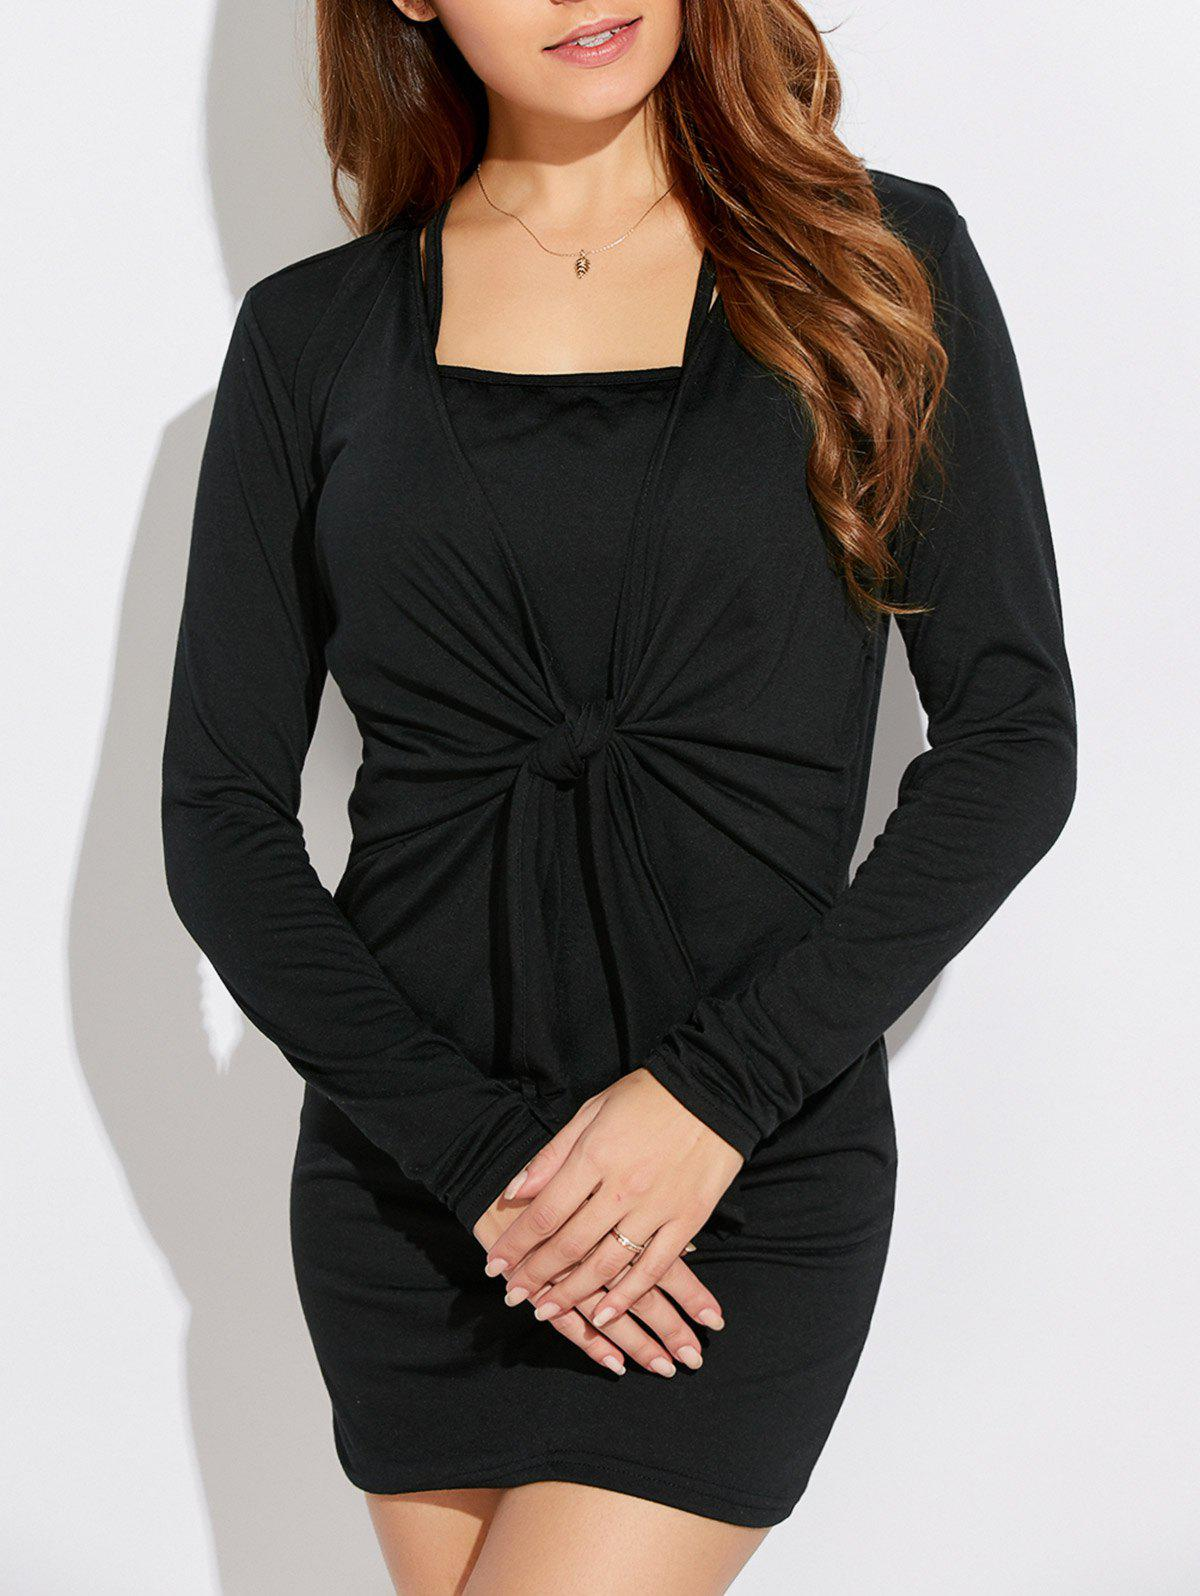 Fancy Casual Lace-Up Long Sleeve Popover Dress